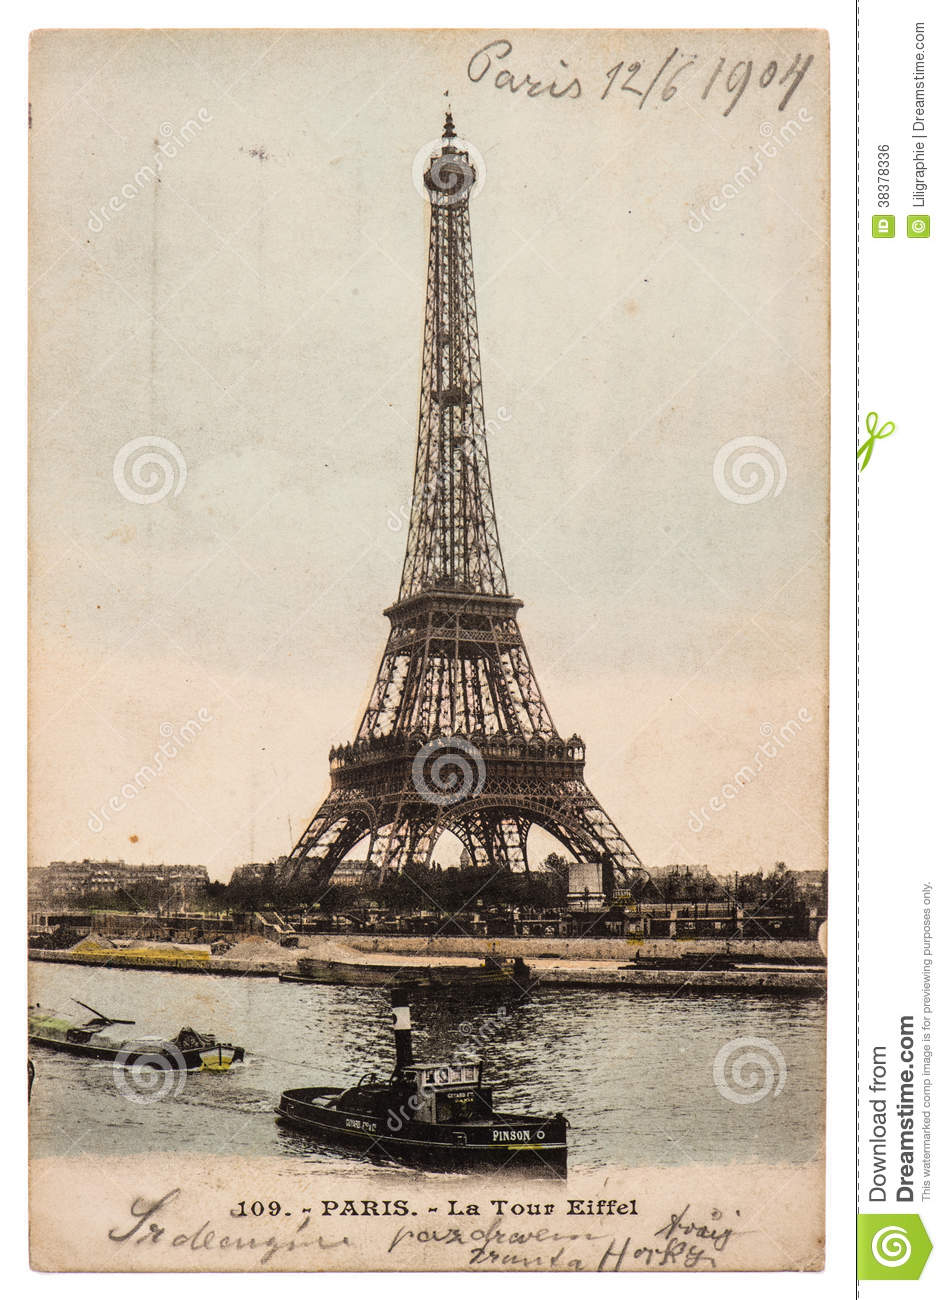 Vintage Postcard With Picture From Eiffel Tower In Paris